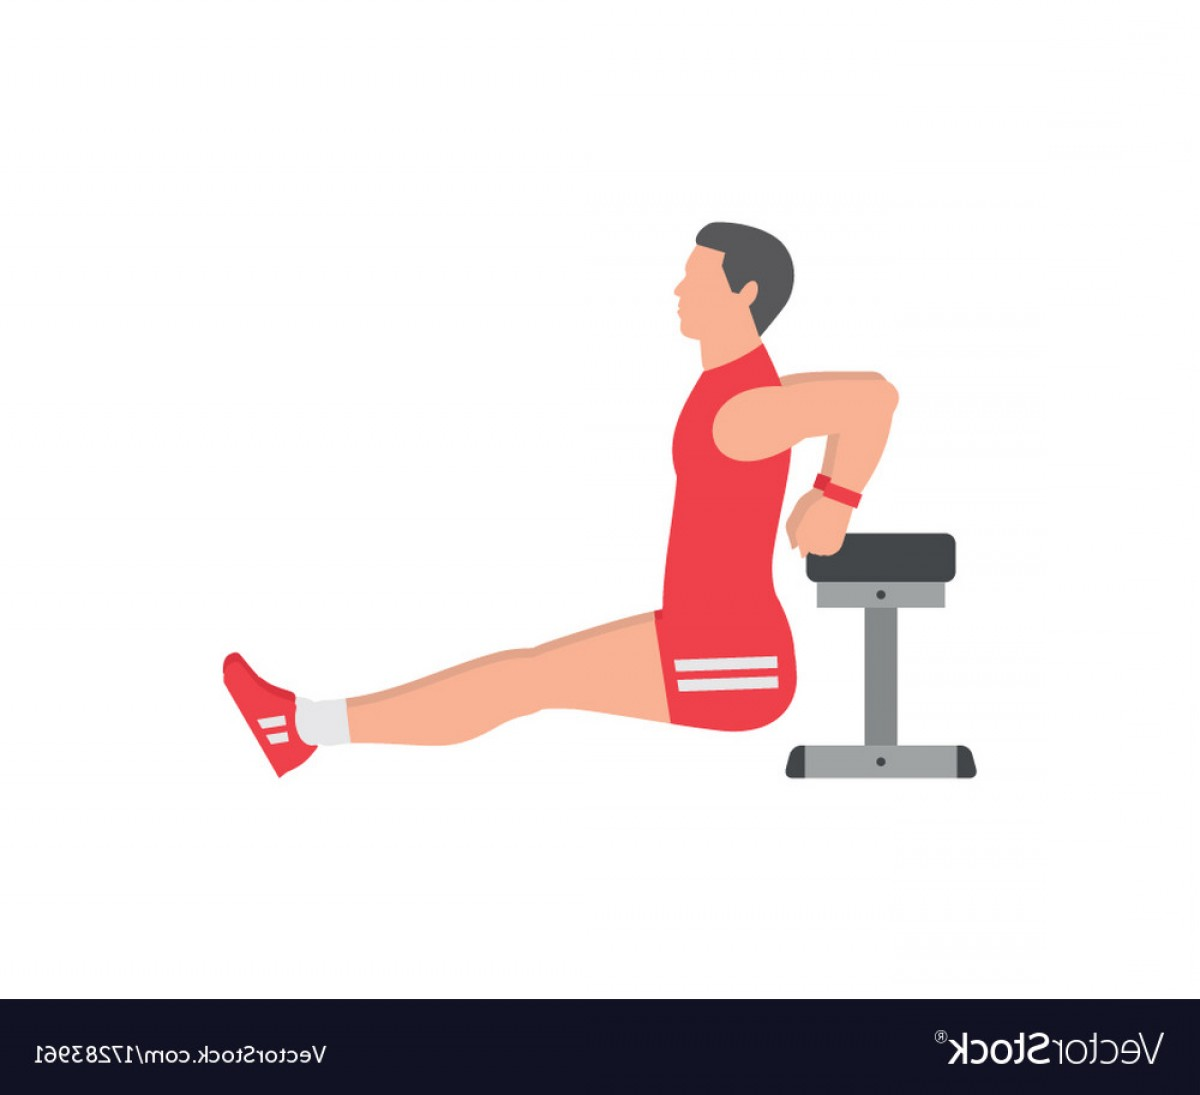 Man Vector Exercise: Man Doing Triceps Dip Exercise On Bench Vector